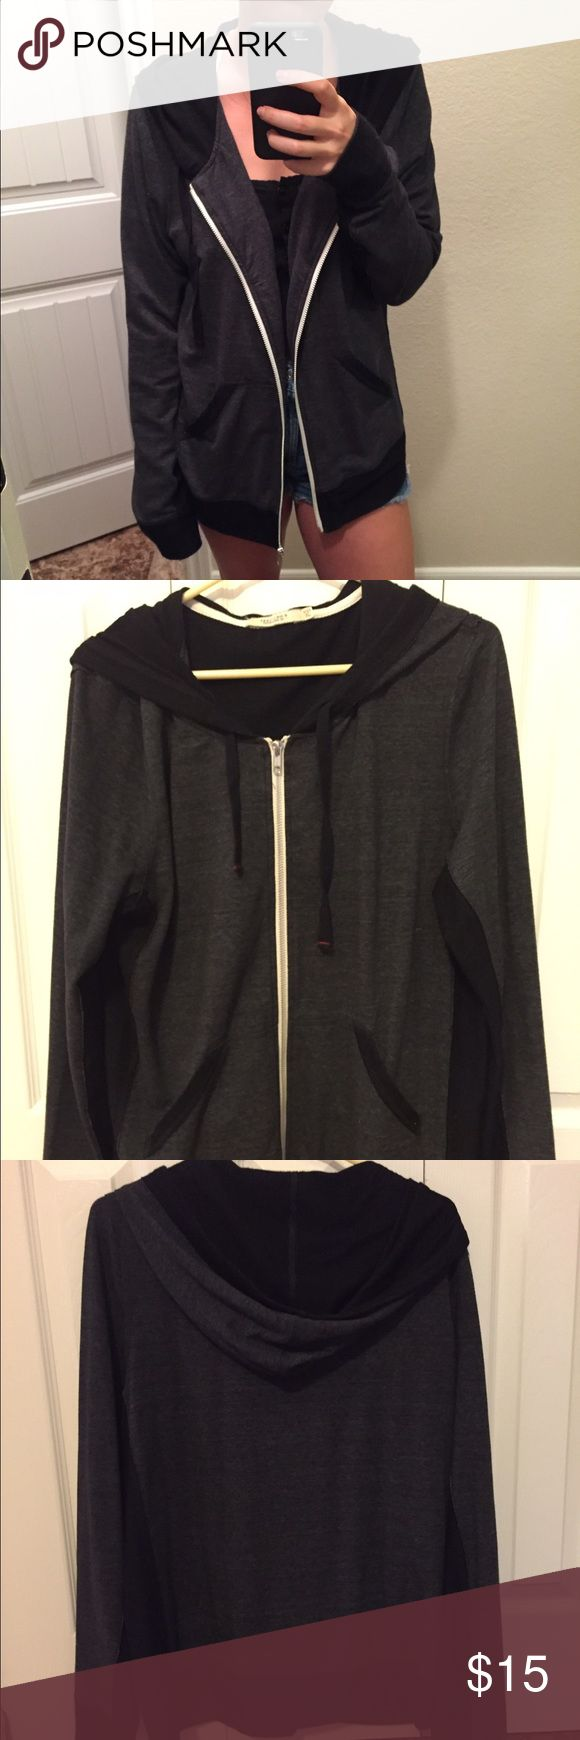 Black and gray zip up hoodie Super comfy black and grey zip up hoodie in size XL! Only worn a few times and in really good condition. I think I actually bought this at Costco 😊😊 H&M Jackets & Coats